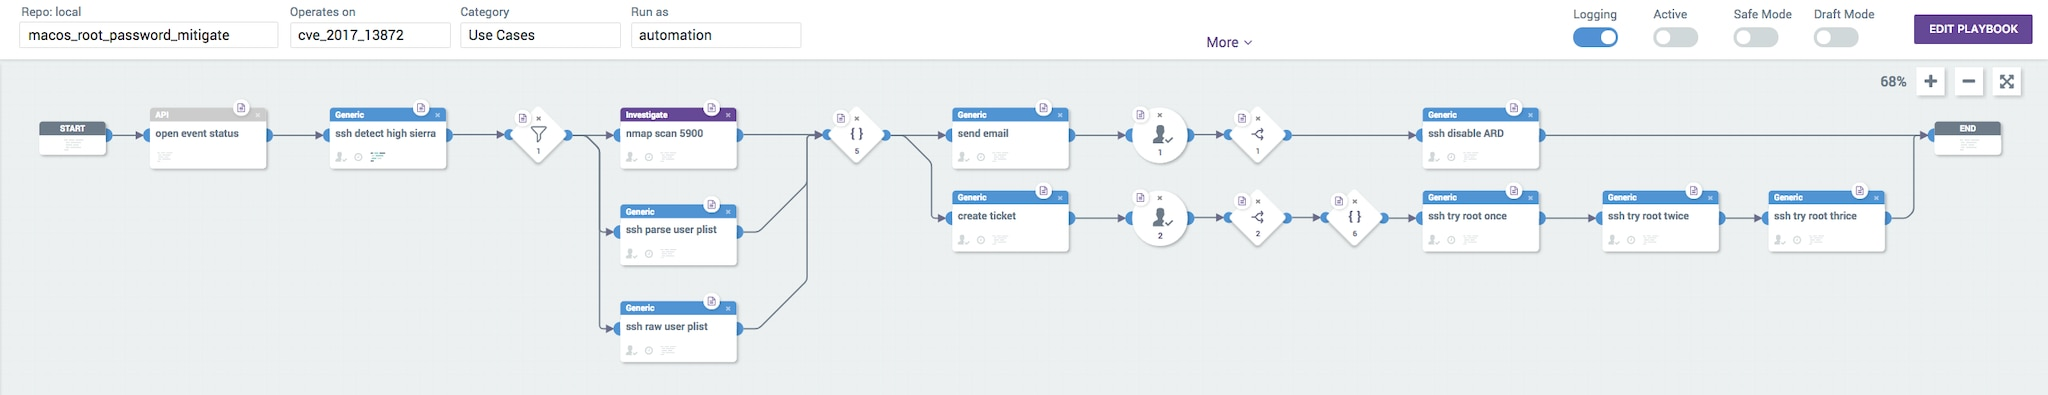 Playbooks: Going Beyond Incident Response Use Cases